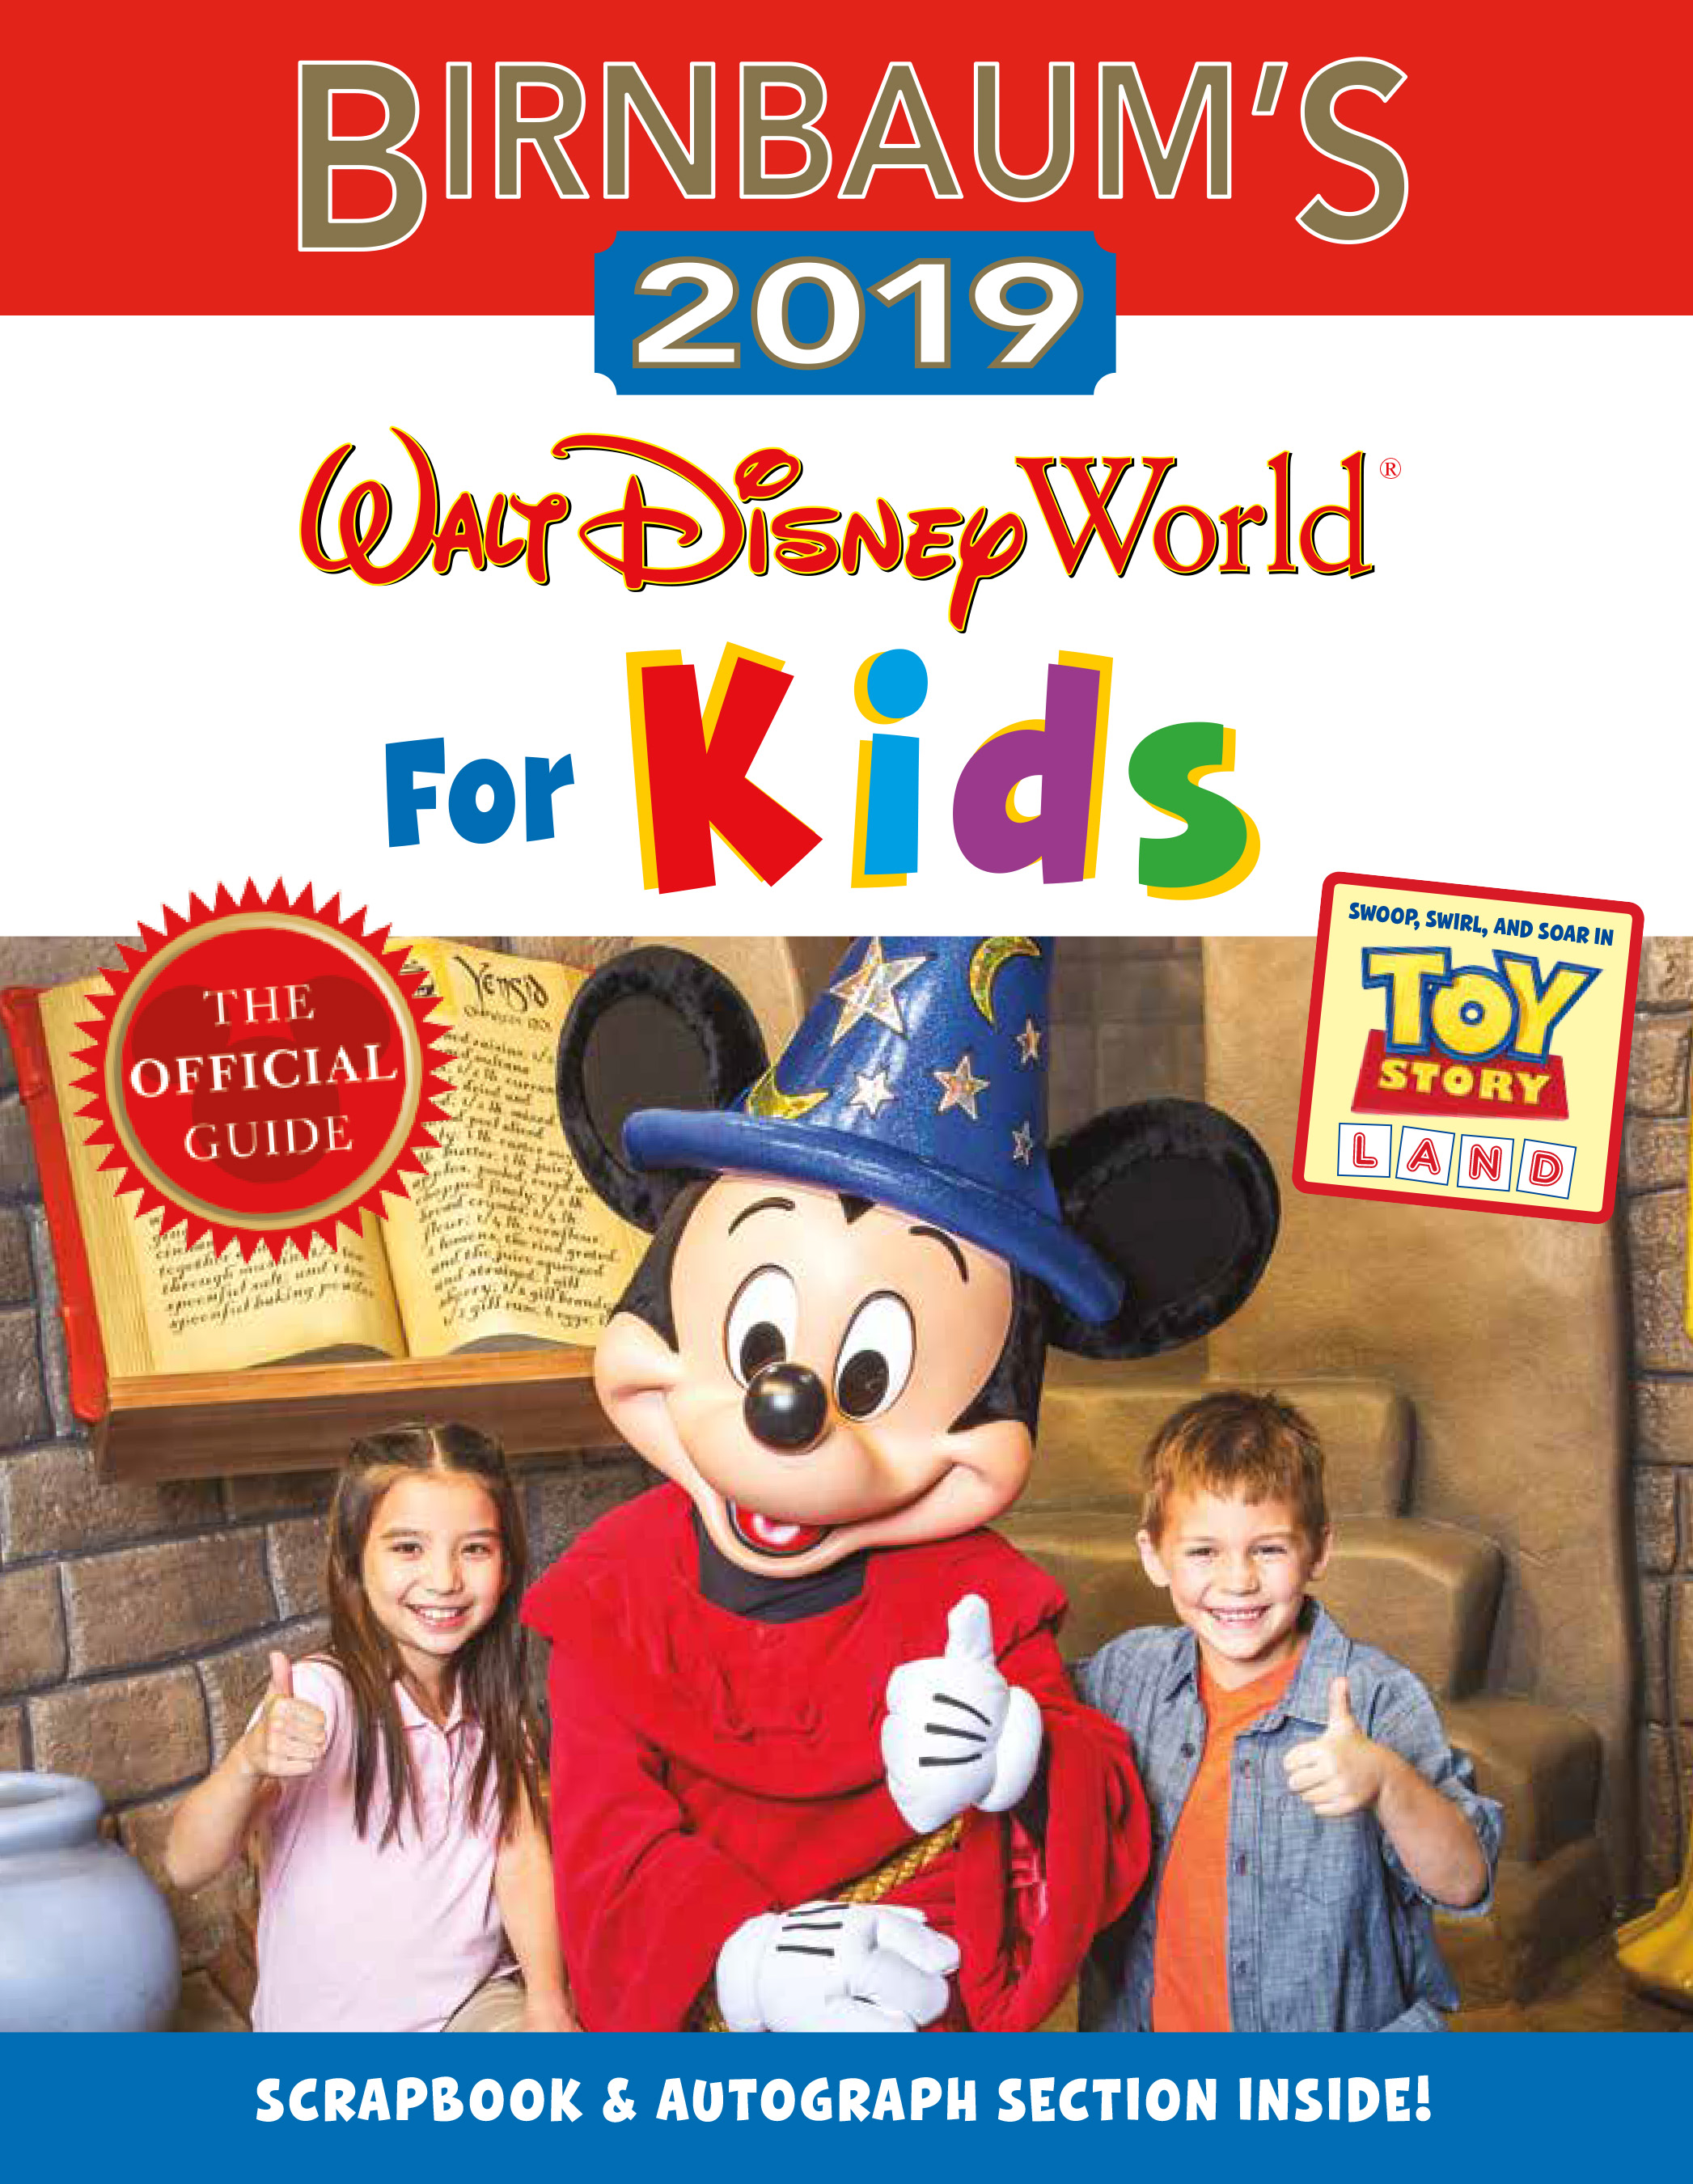 Birnbaum's 2019 Walt Disney World for Kids | Disney Books | Disney